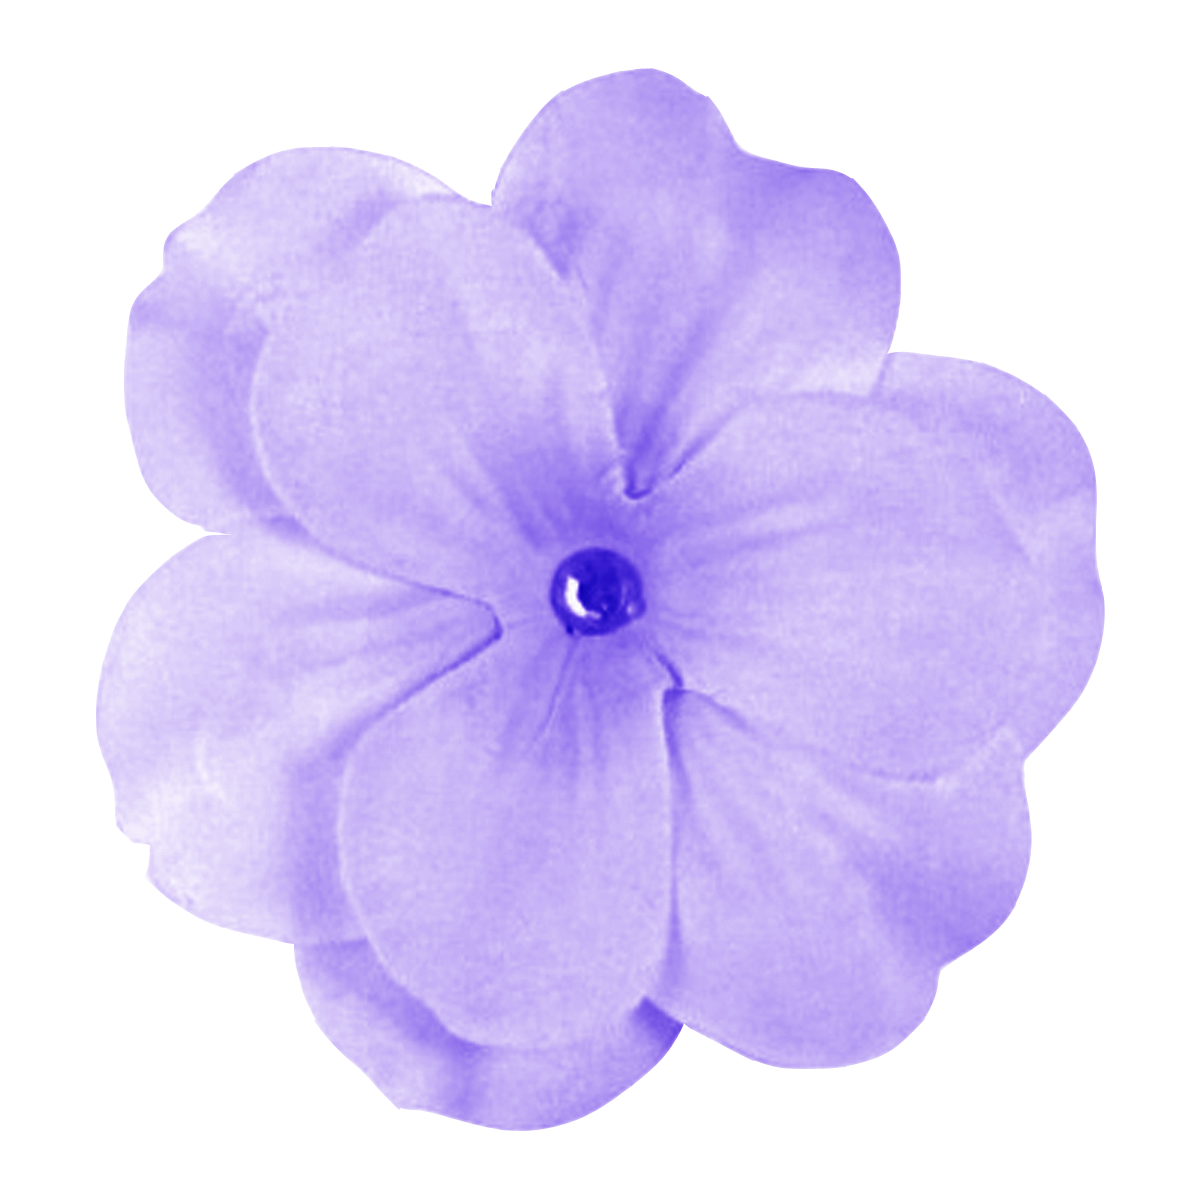 Purple flower png. Transparent pictures free icons